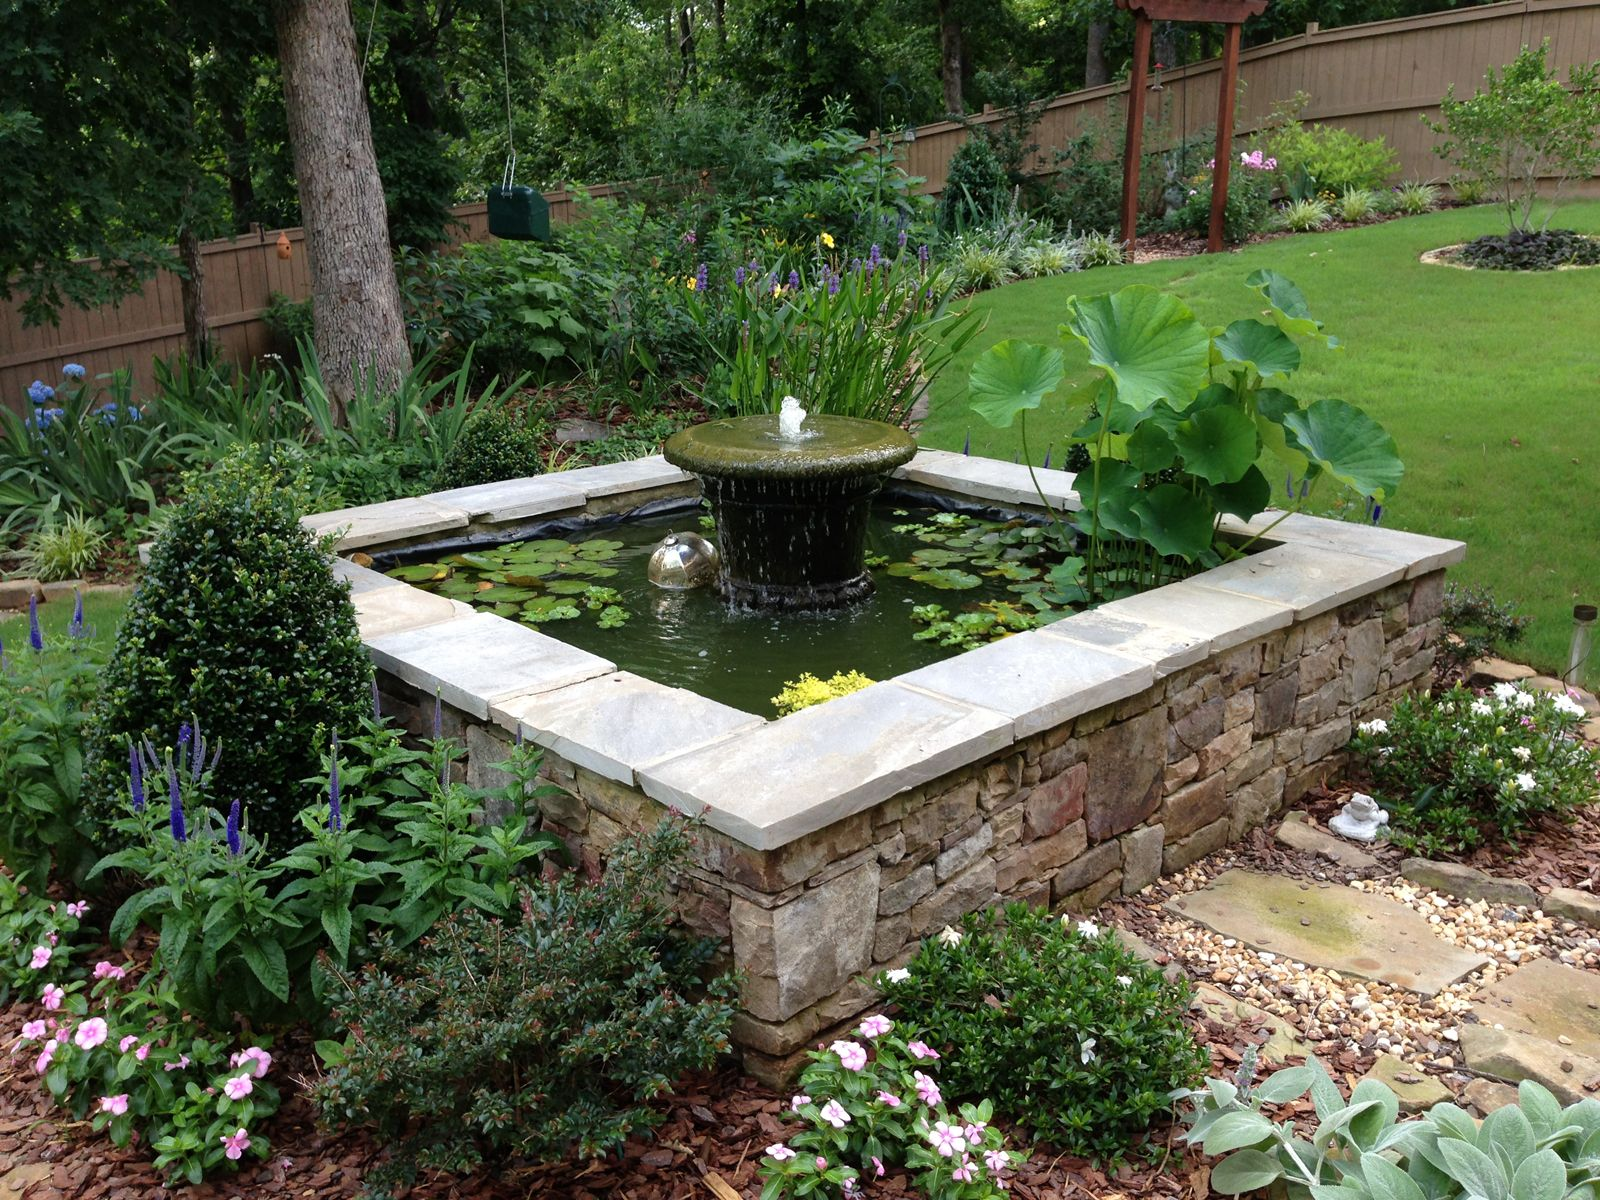 Square water pool carol bill 39 s garden in georgia for Koi pool water gardens thornton